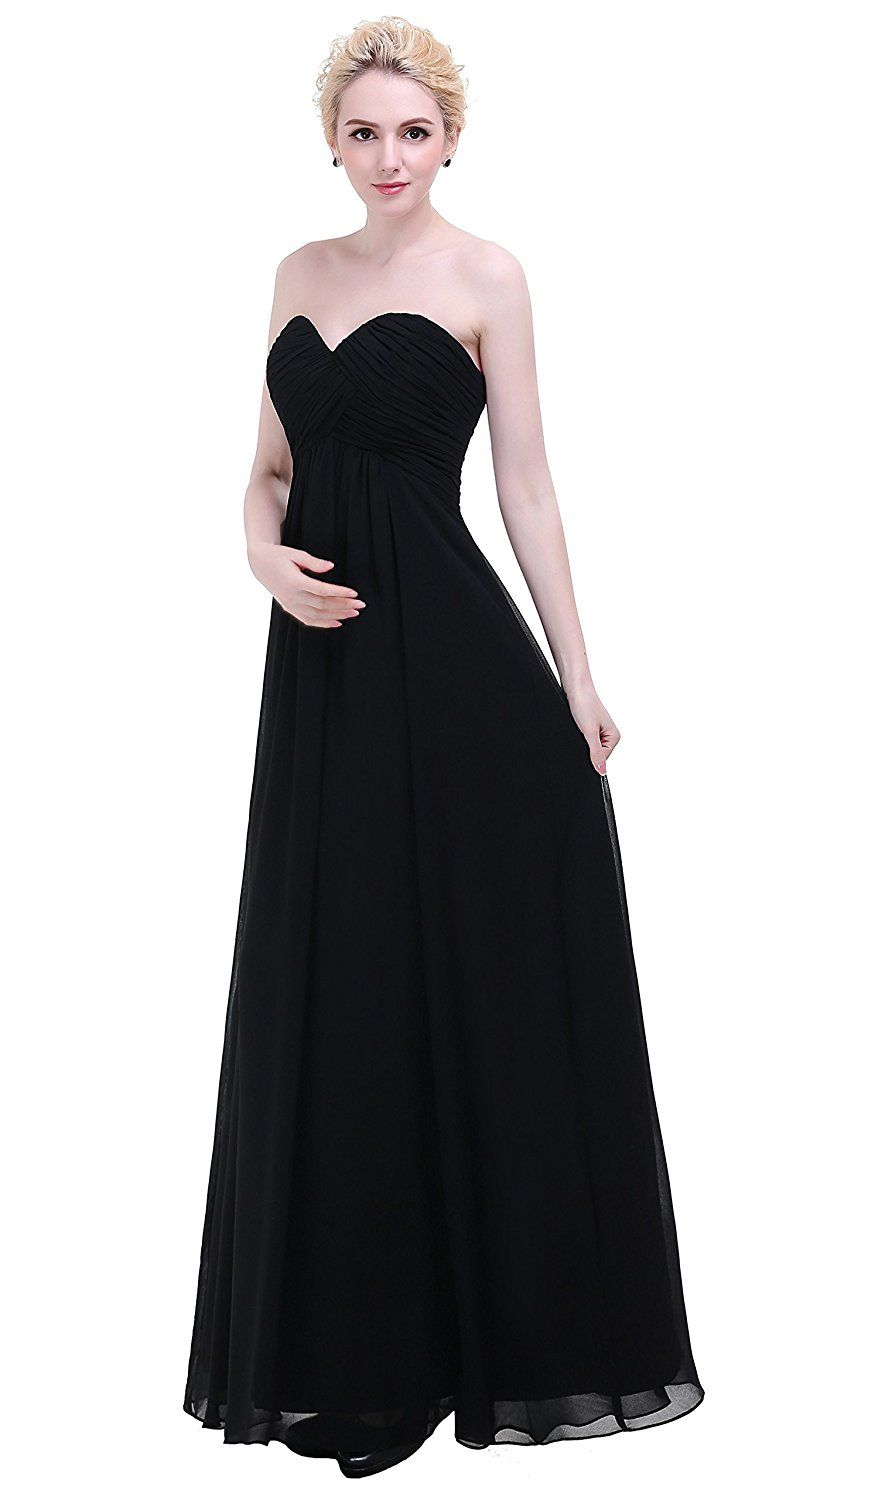 Esvor sweetheart chiffon party prom bridesmaid dress long evening